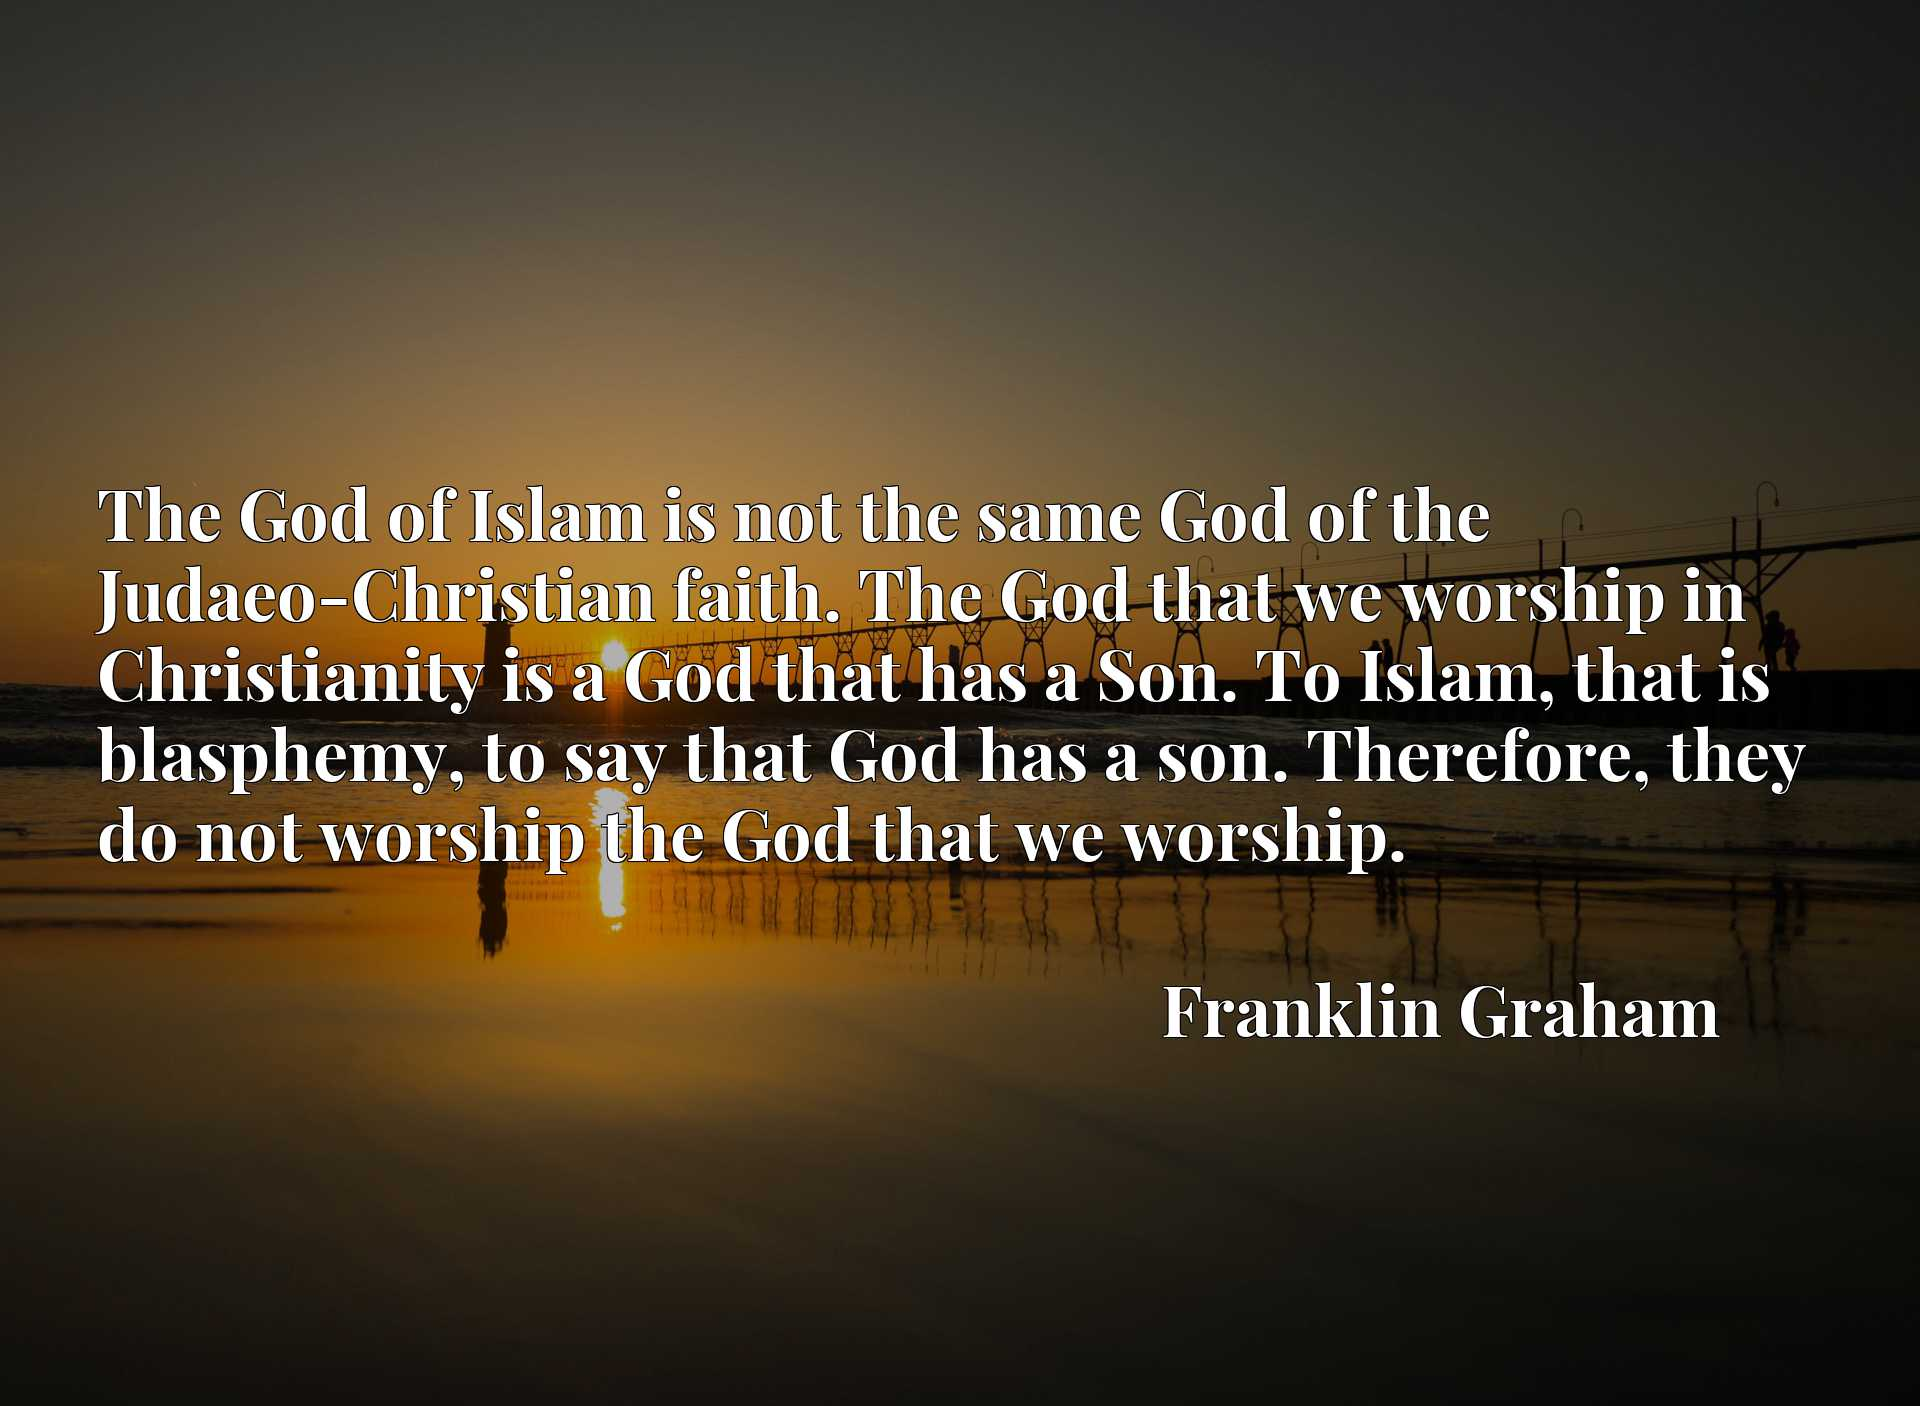 The God of Islam is not the same God of the Judaeo-Christian faith. The God that we worship in Christianity is a God that has a Son. To Islam, that is blasphemy, to say that God has a son. Therefore, they do not worship the God that we worship.